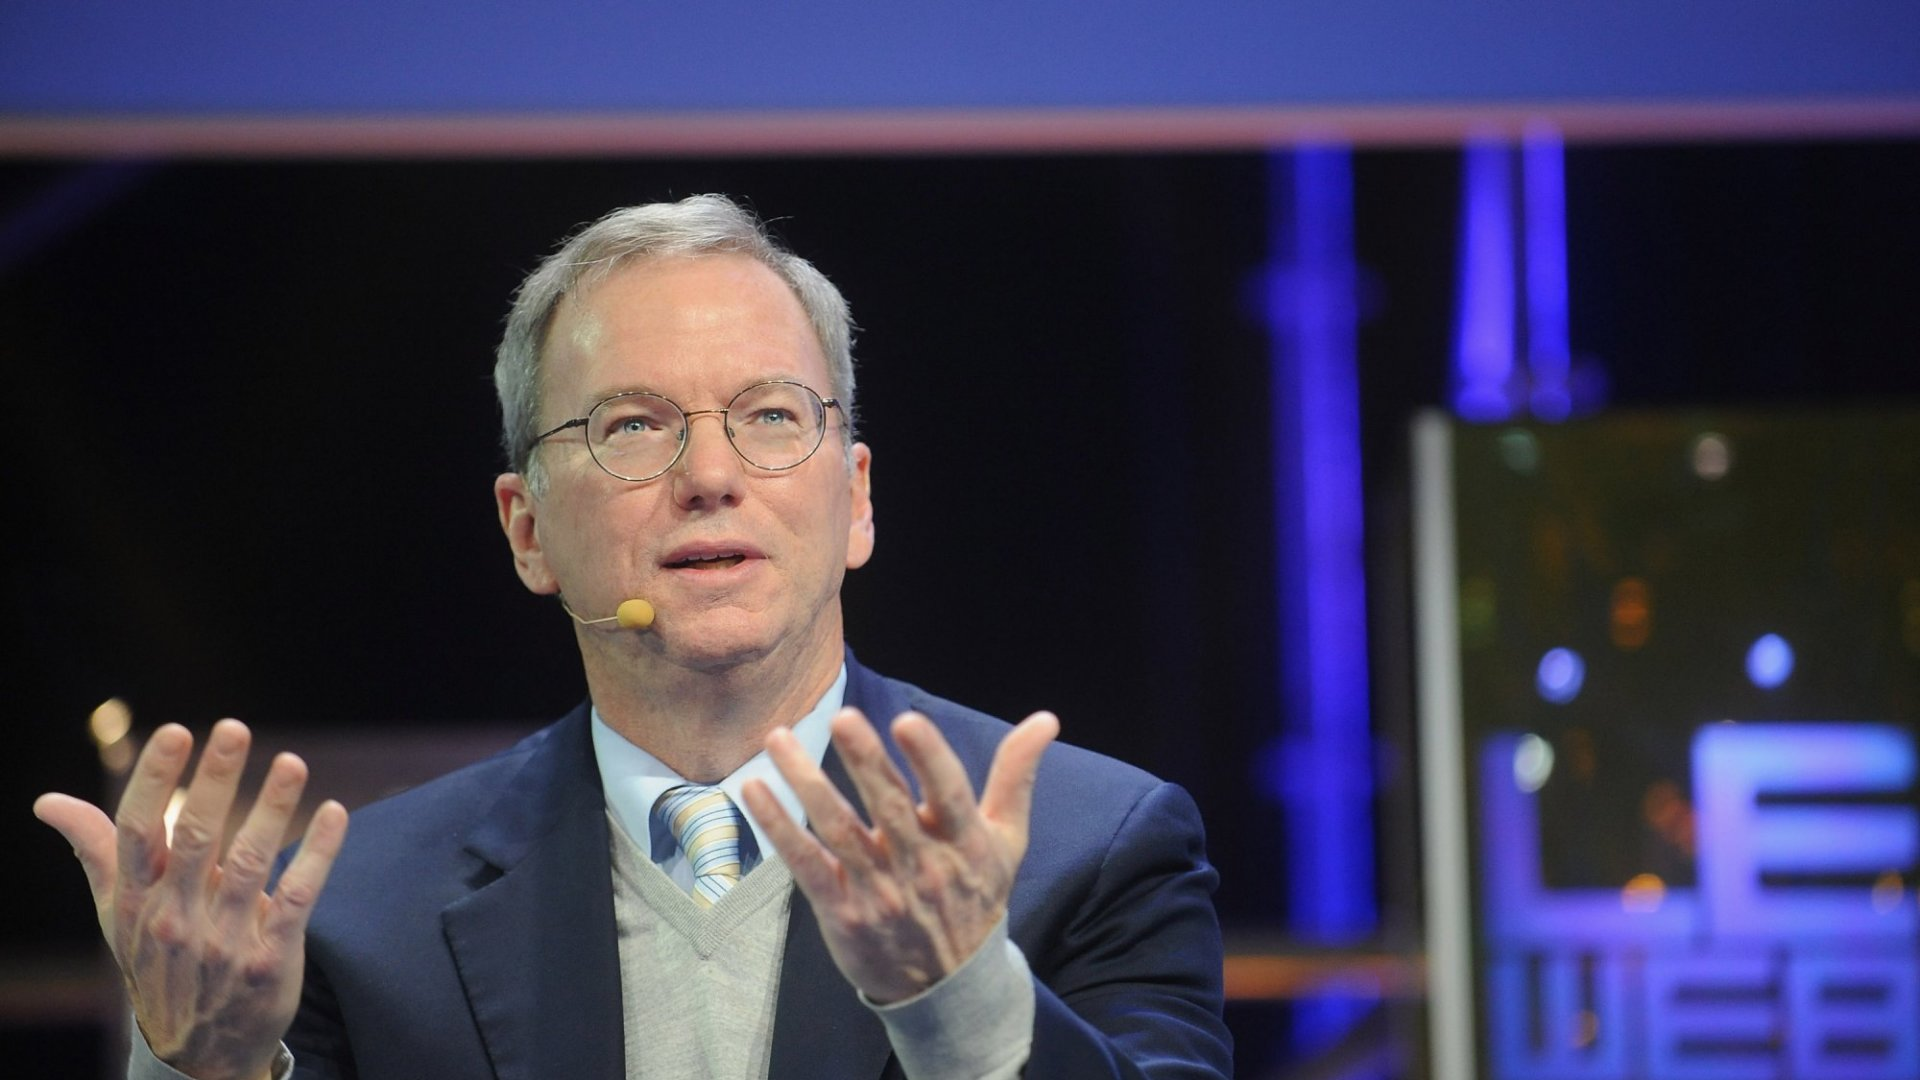 Former Chairman of Google Eric Schmidt, Says This Is the 1 Thing People Are Never Good At (and What You Can Do About It)